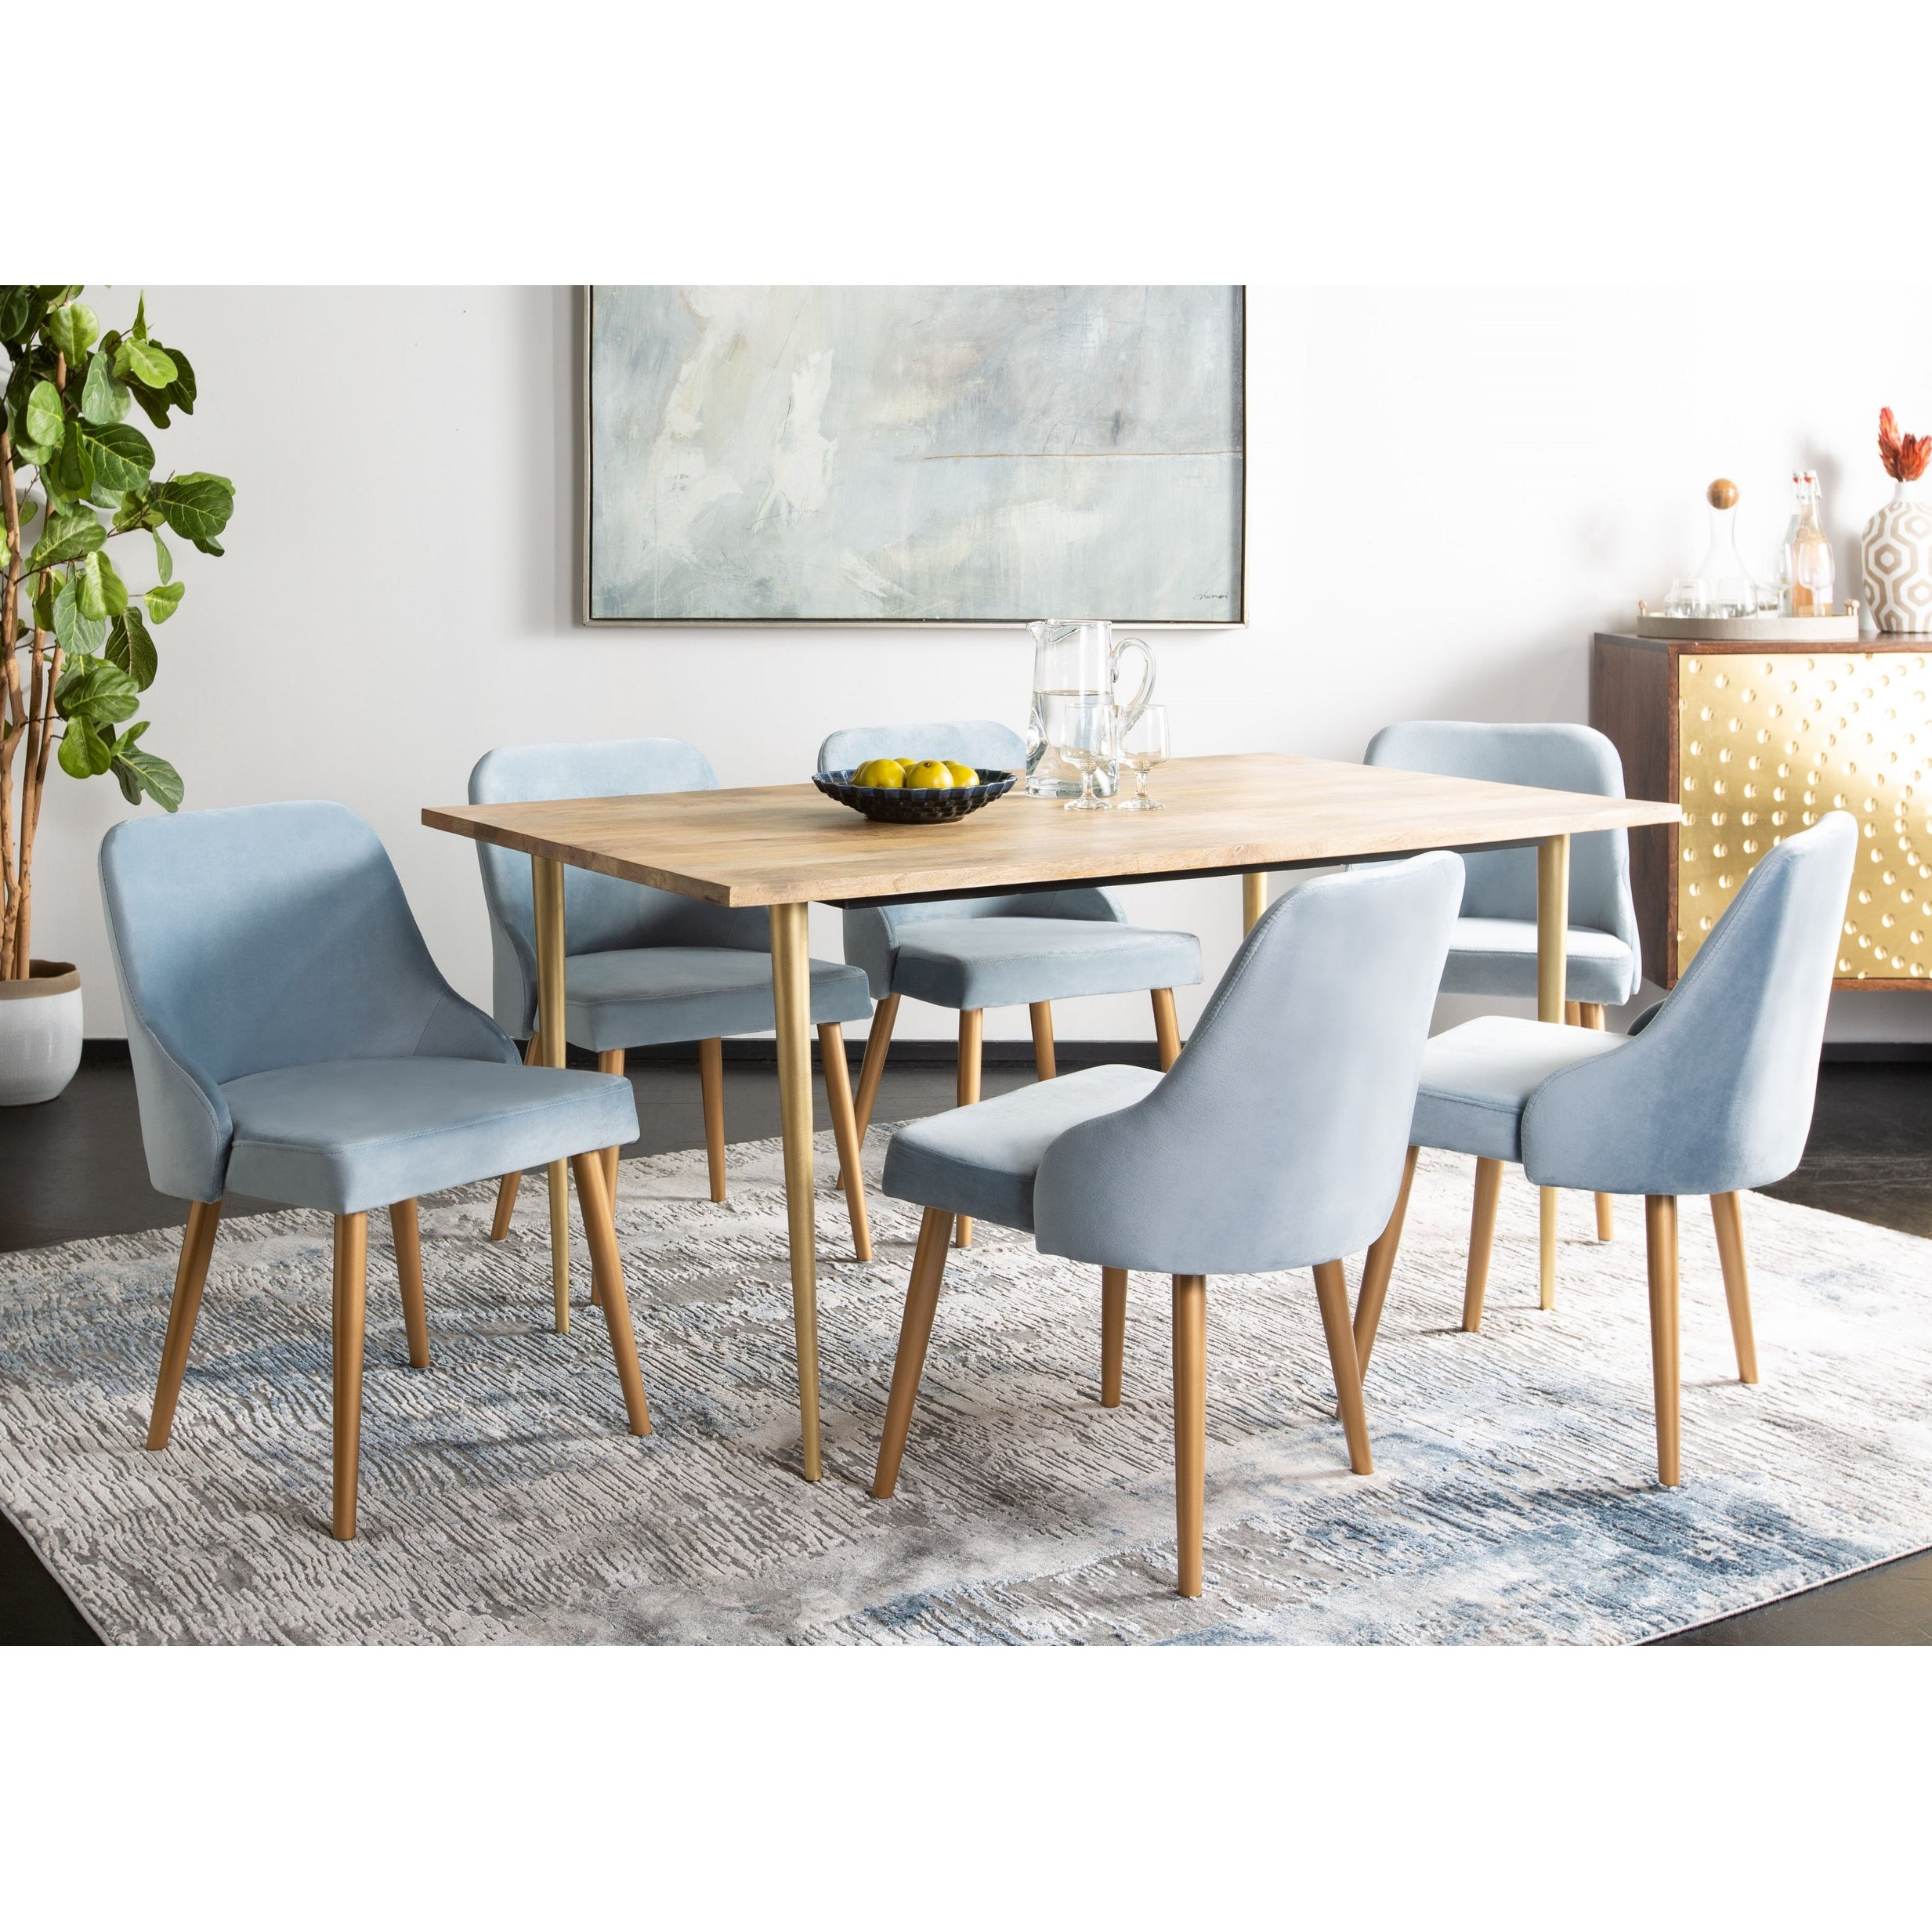 Picture of: Safavieh 18 3 Lulu Upholstered Dining Chair Slate Blue Gold Set Of 2 21 X 22 X 31 Overstock 22363470